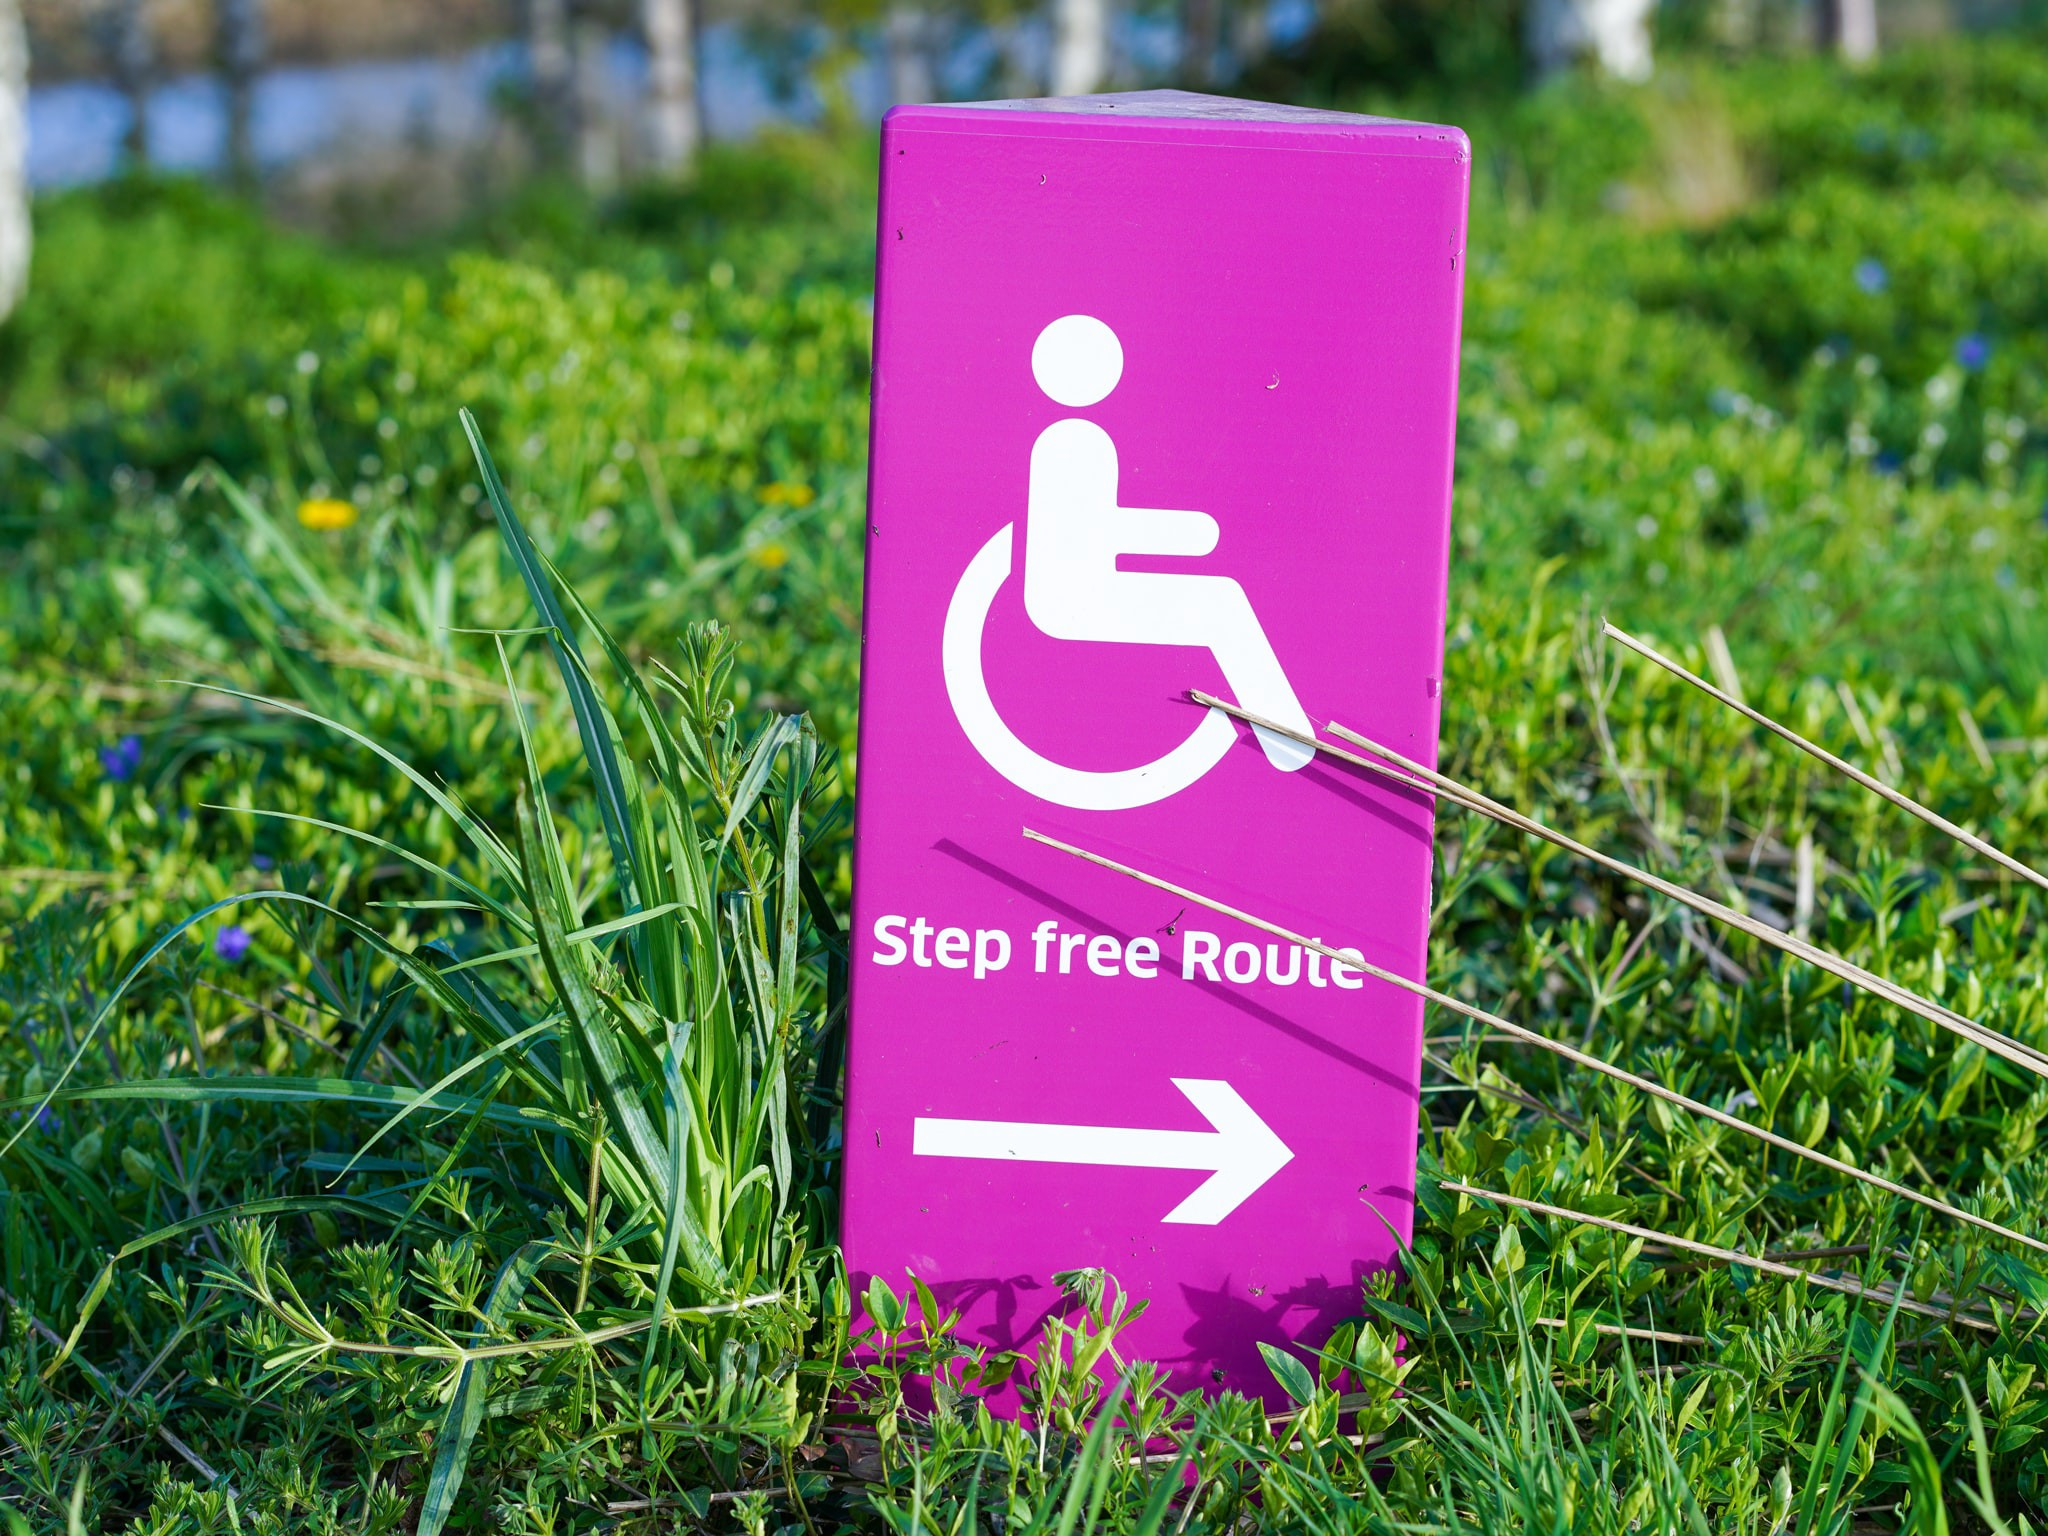 green grass holding a bright pink sign with wheelchair icon and an arrow pointing to the right, indicating a step free path